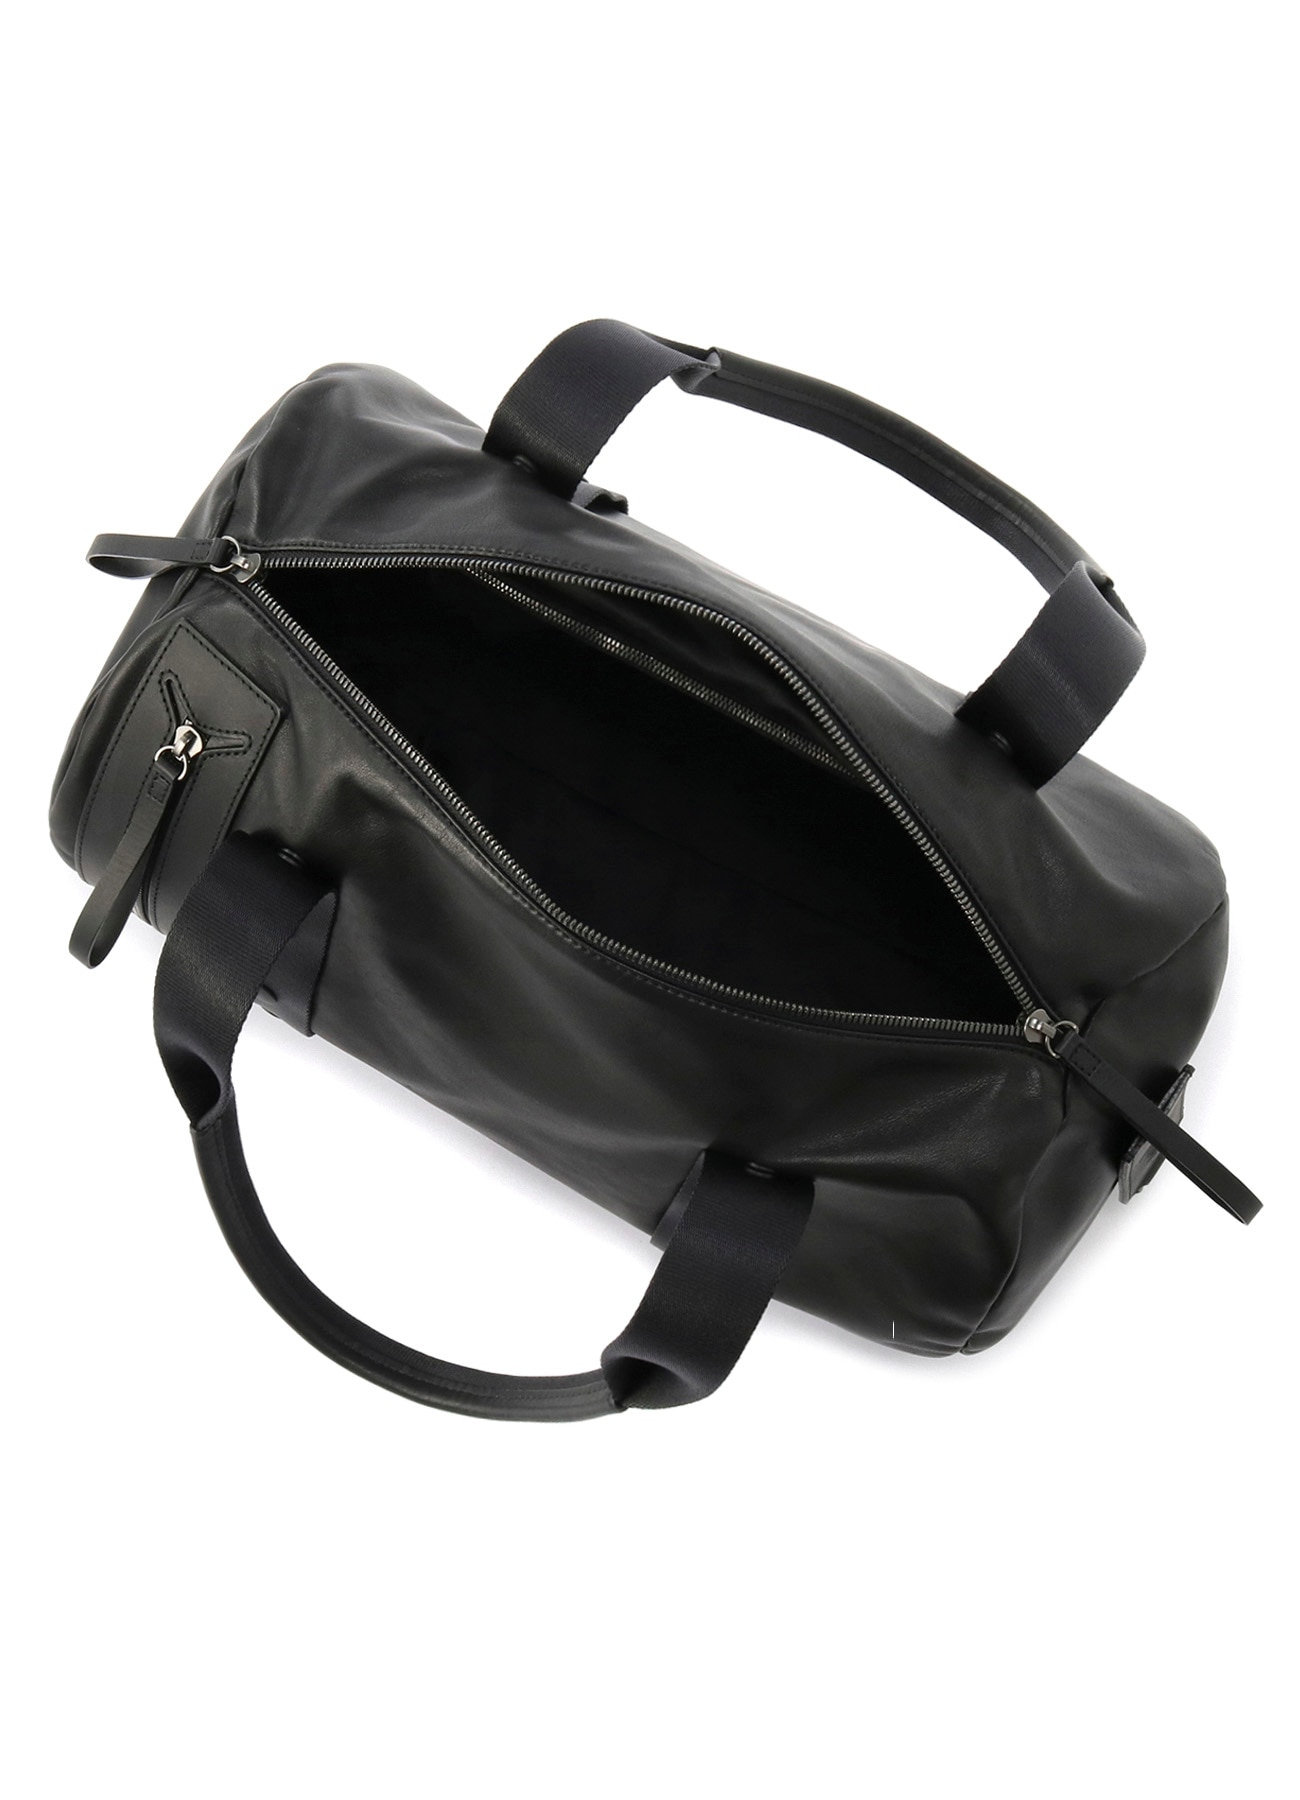 Hook Drum bag